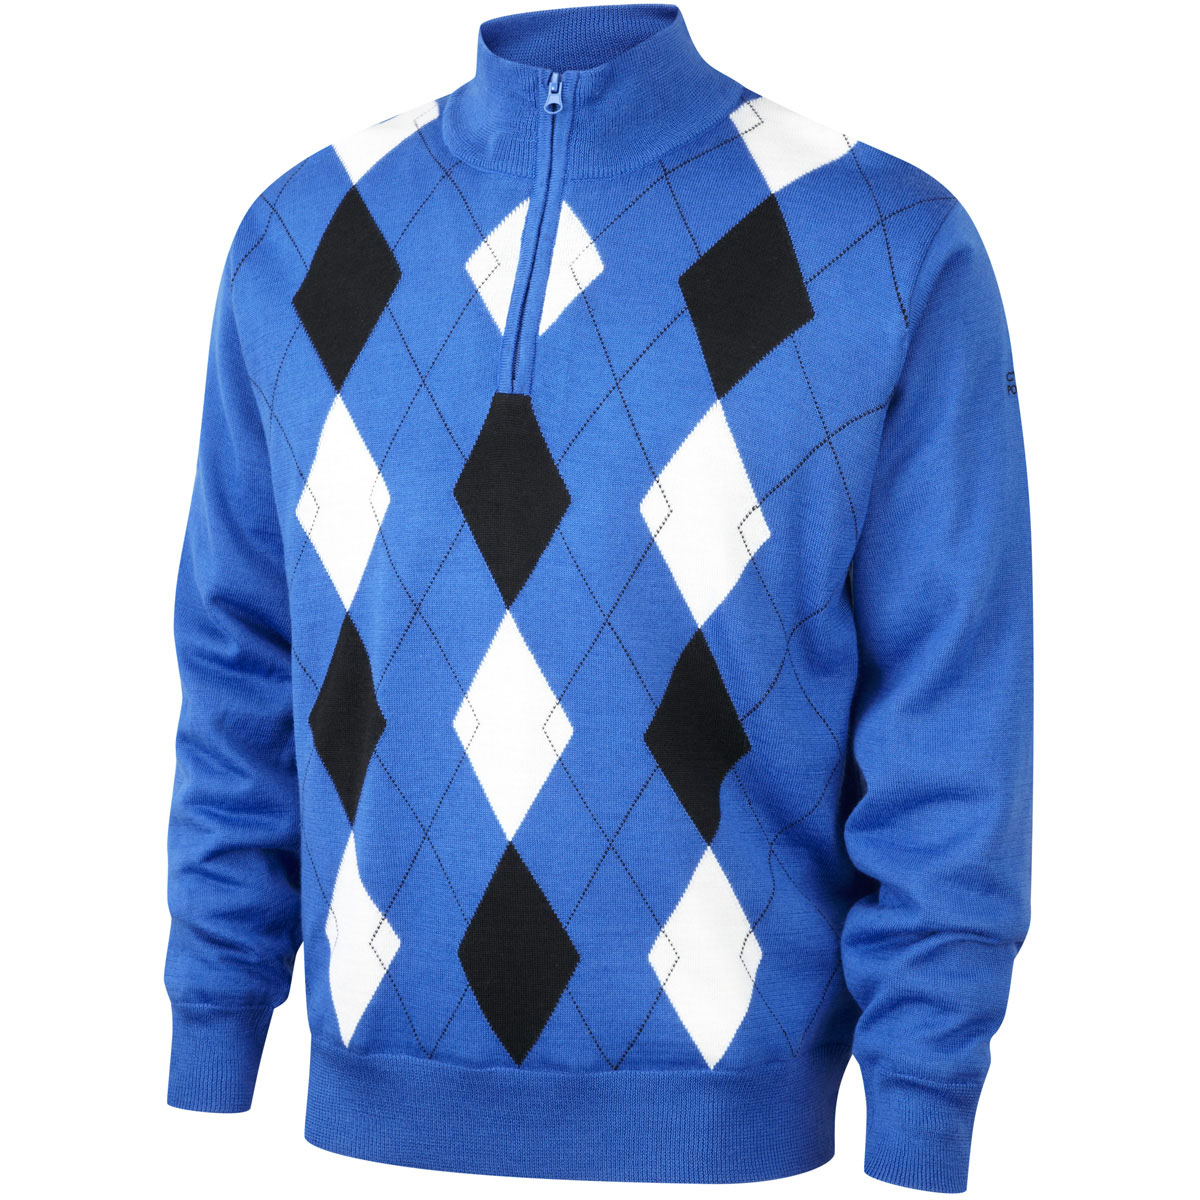 53% OFF RRP Cypress Point Mens Jacquard 1/2 Zip Lined Windproof Golf Sweater